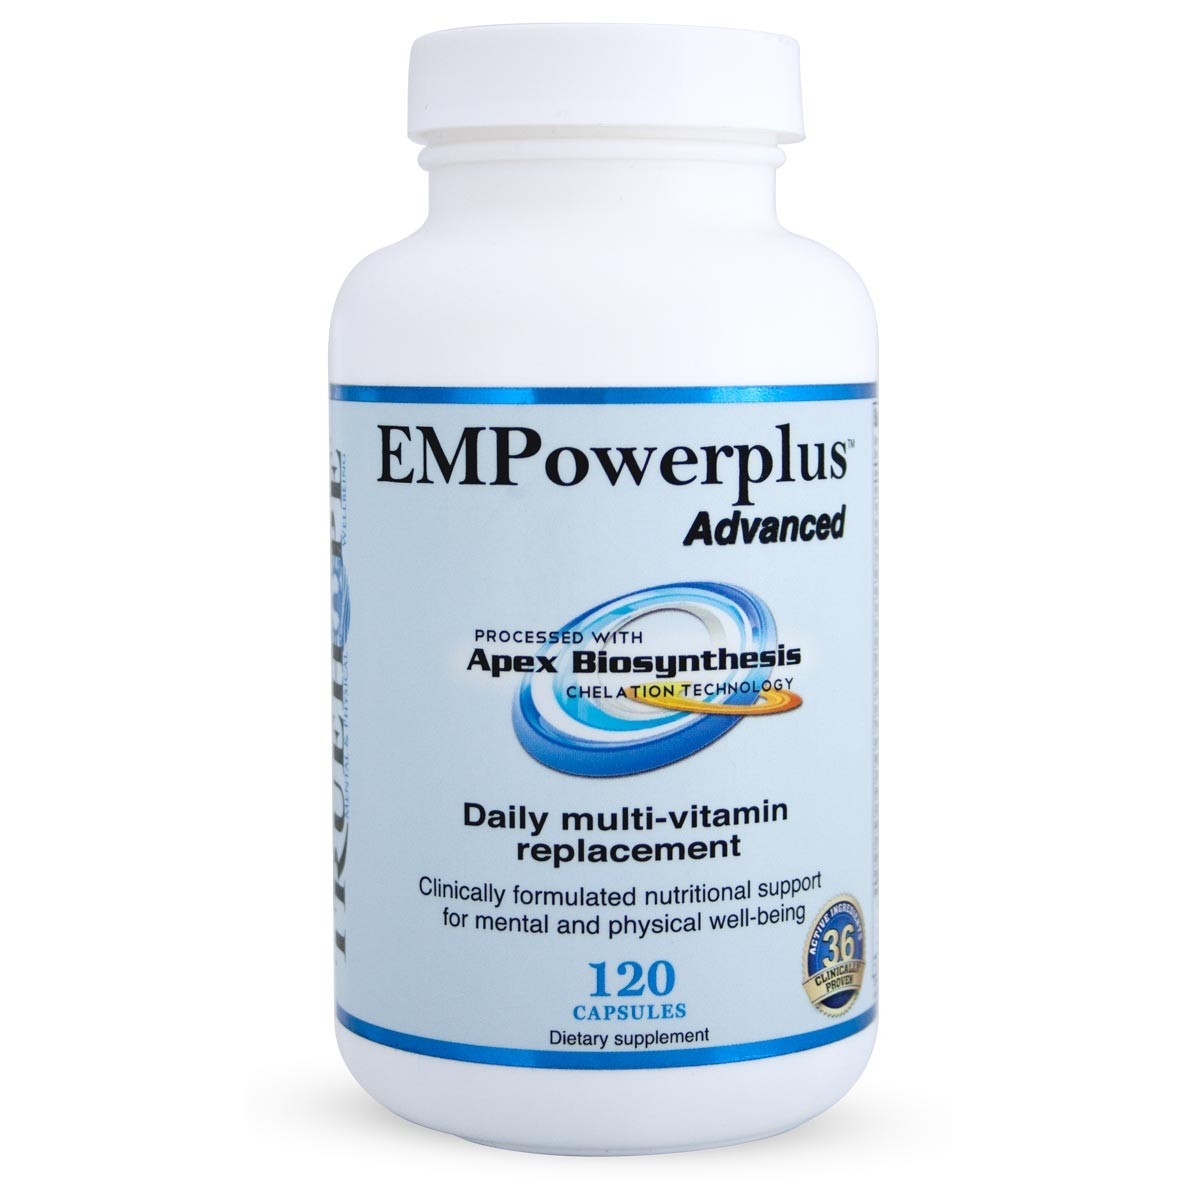 Why is EMPowerplus more expensive than other multivitamin supplements?